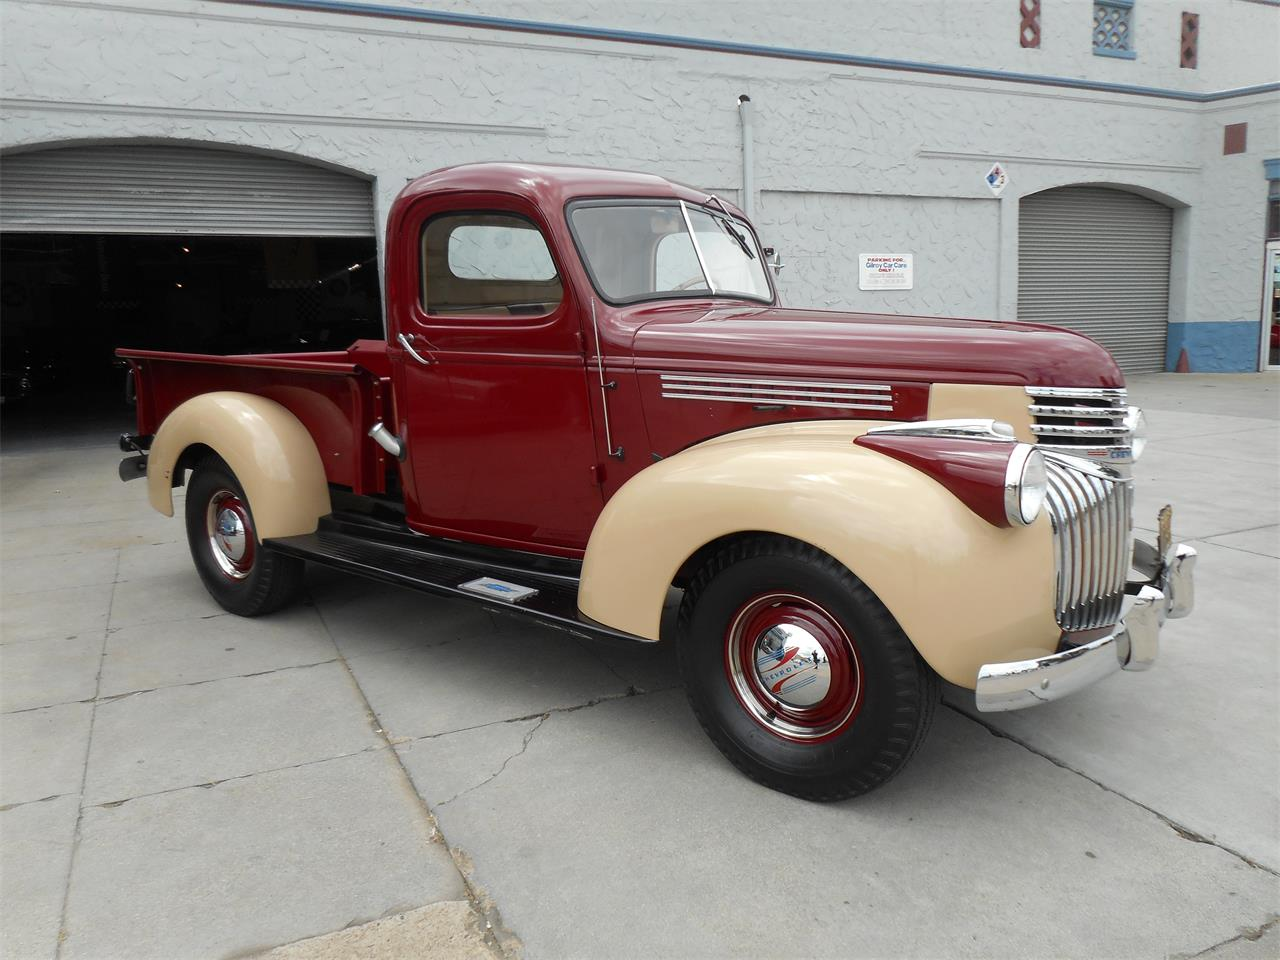 1942 Chevrolet Pickup For Sale Cc 1088673 Chevy Truck Seat Large Picture Of Classic 2490000 Nc0x